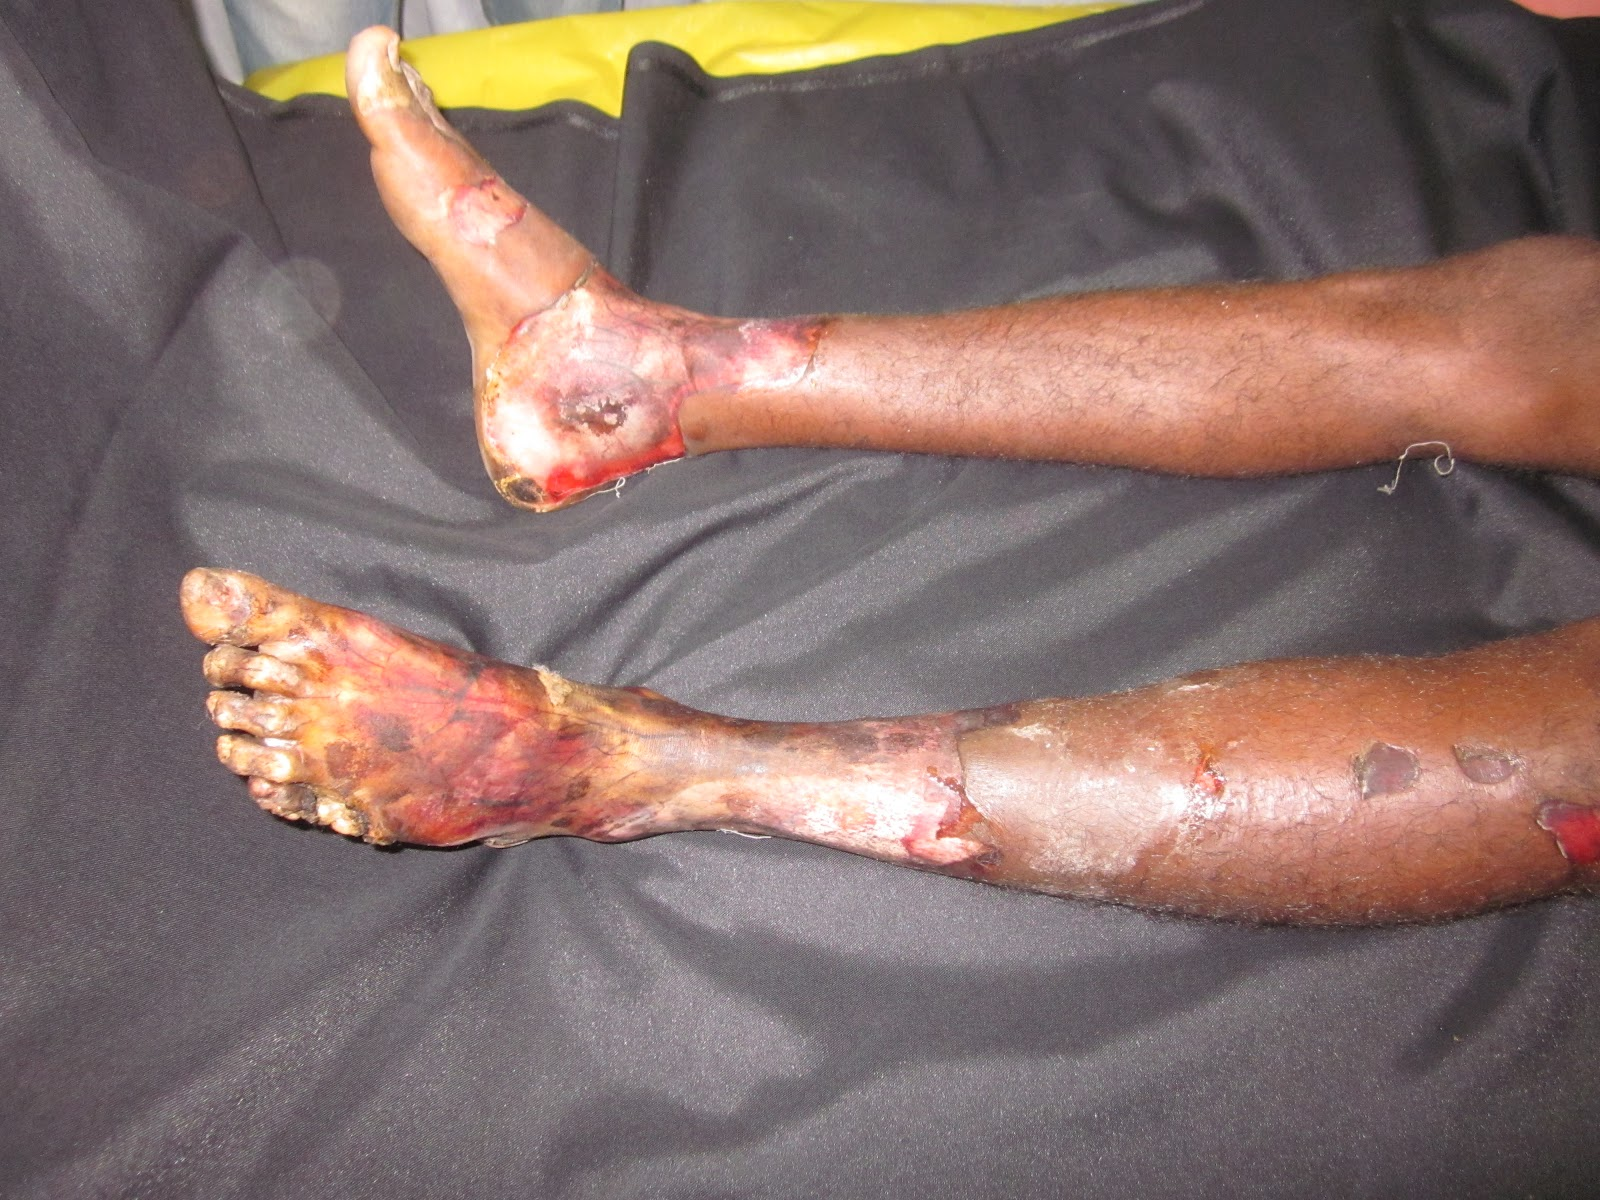 High Voltage Electrical Contact Burns